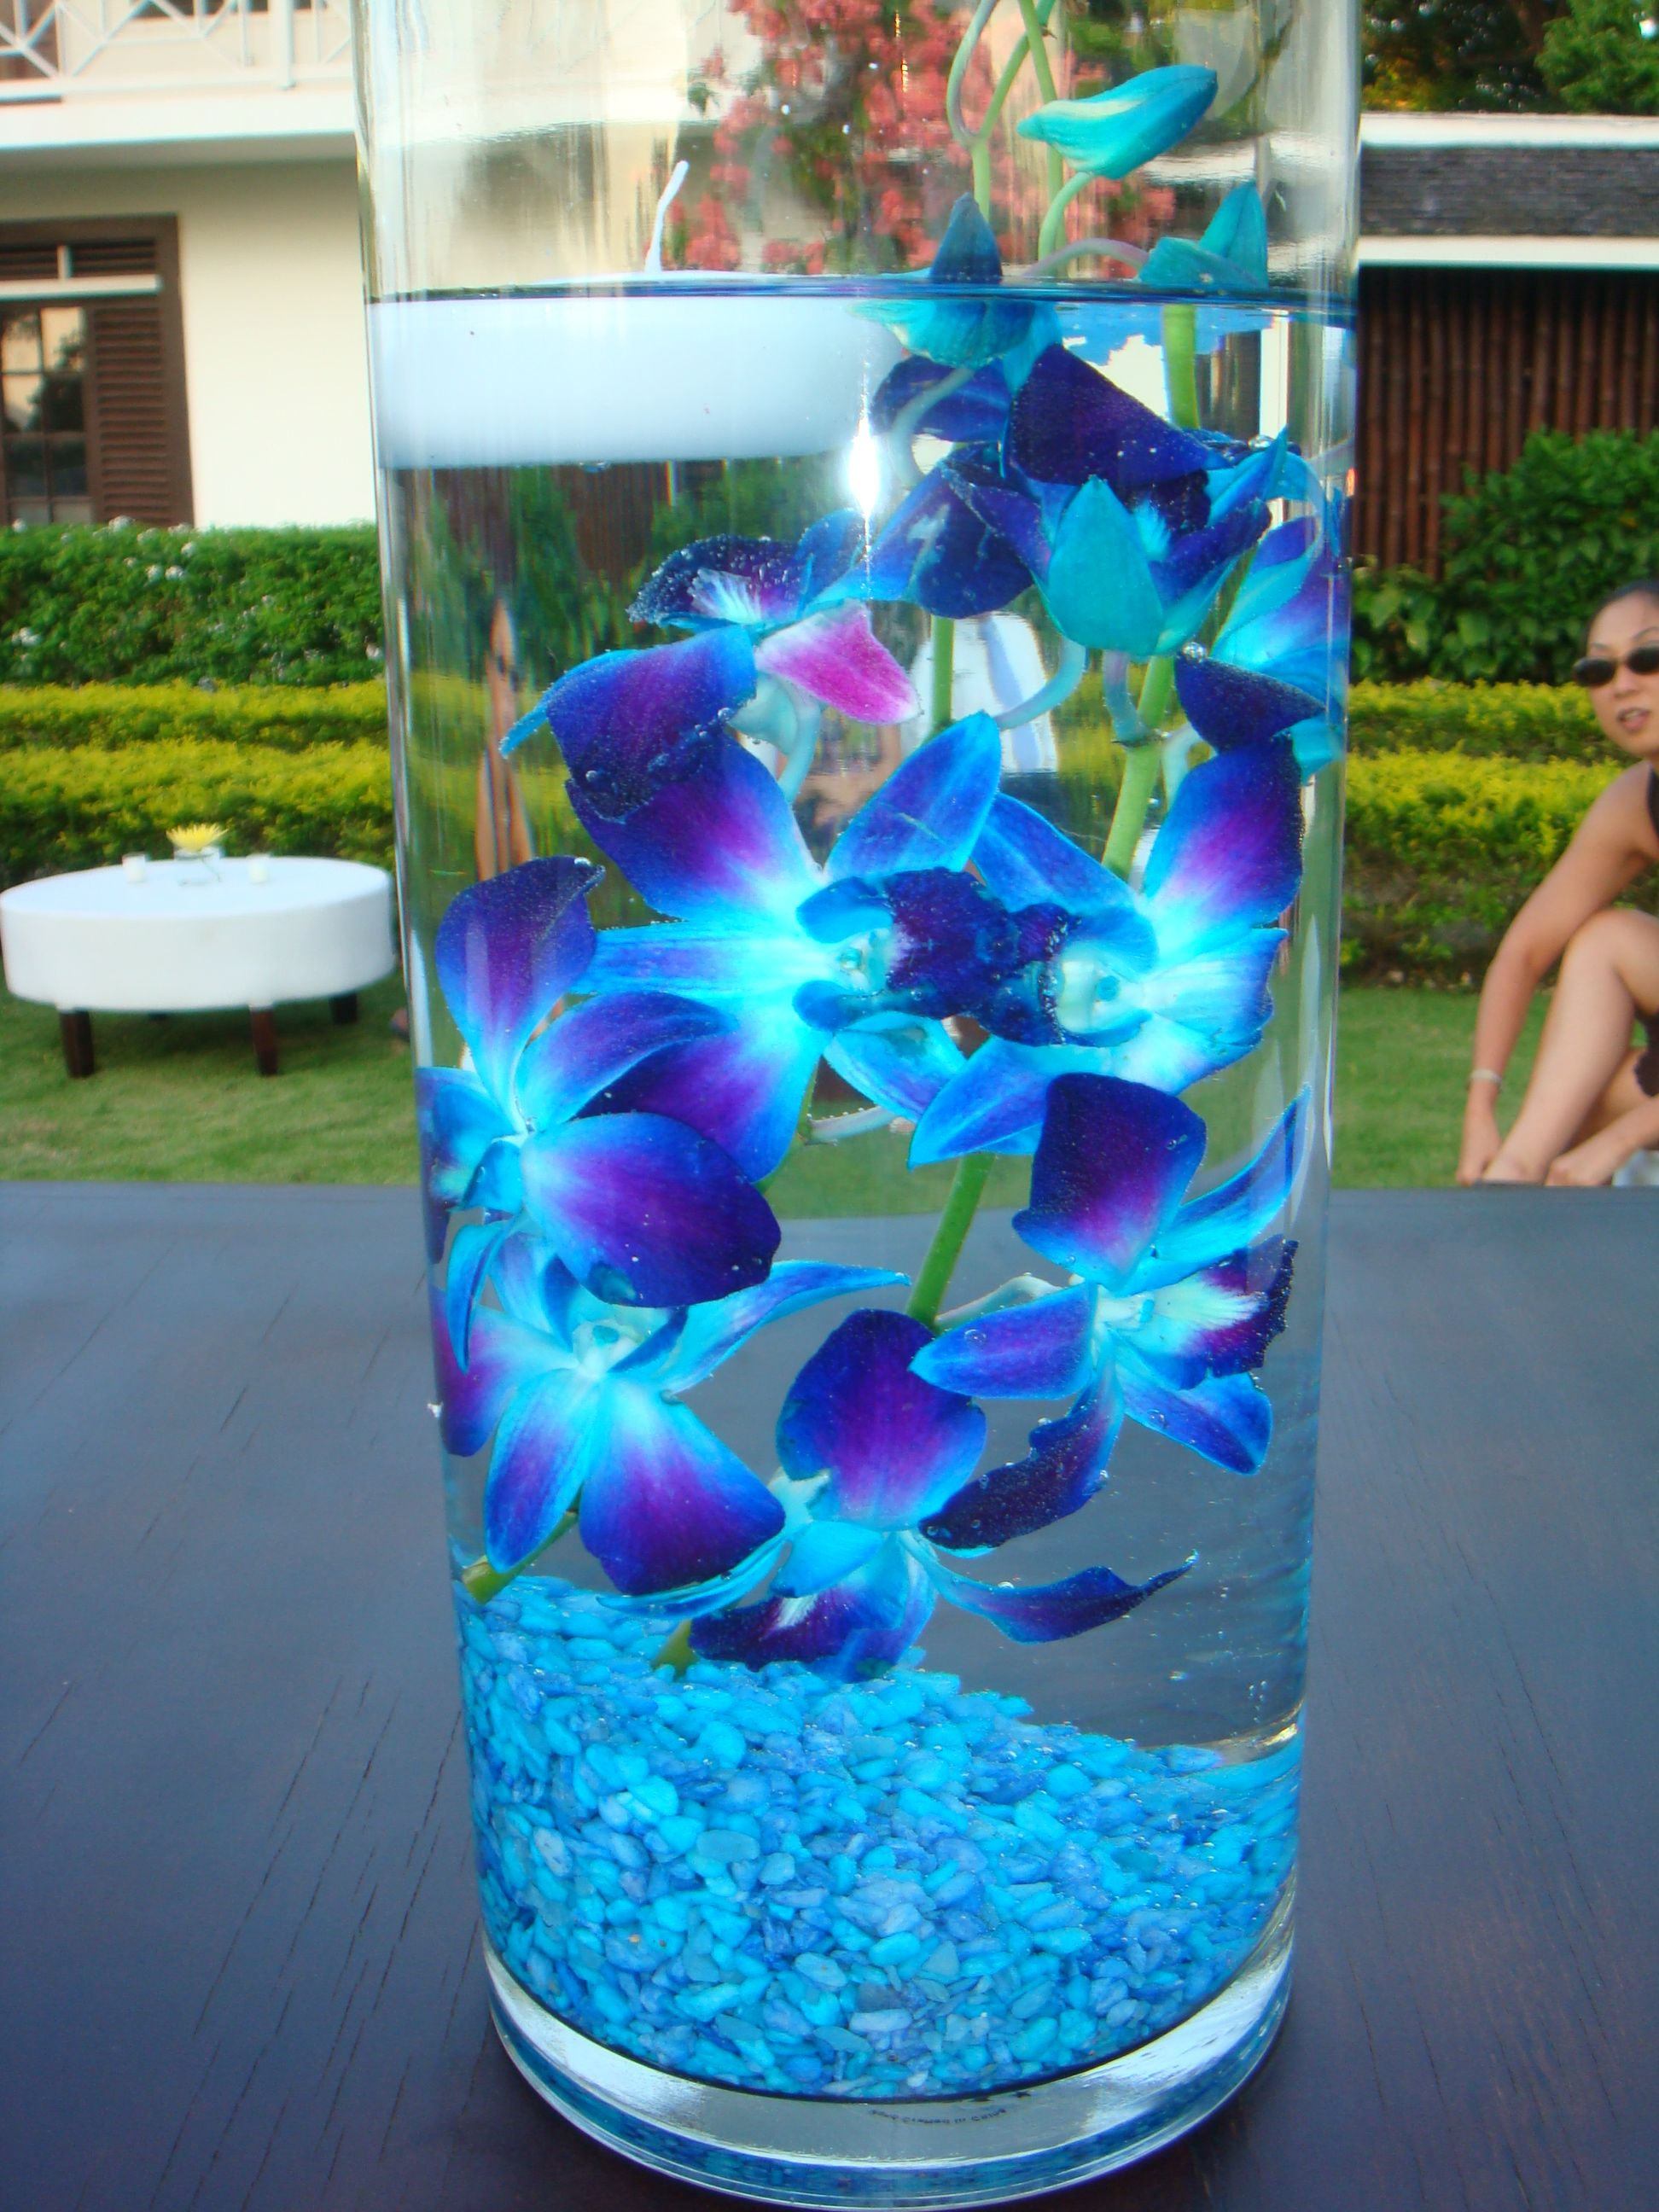 Blue dendrobium orchids submerged in water designed by